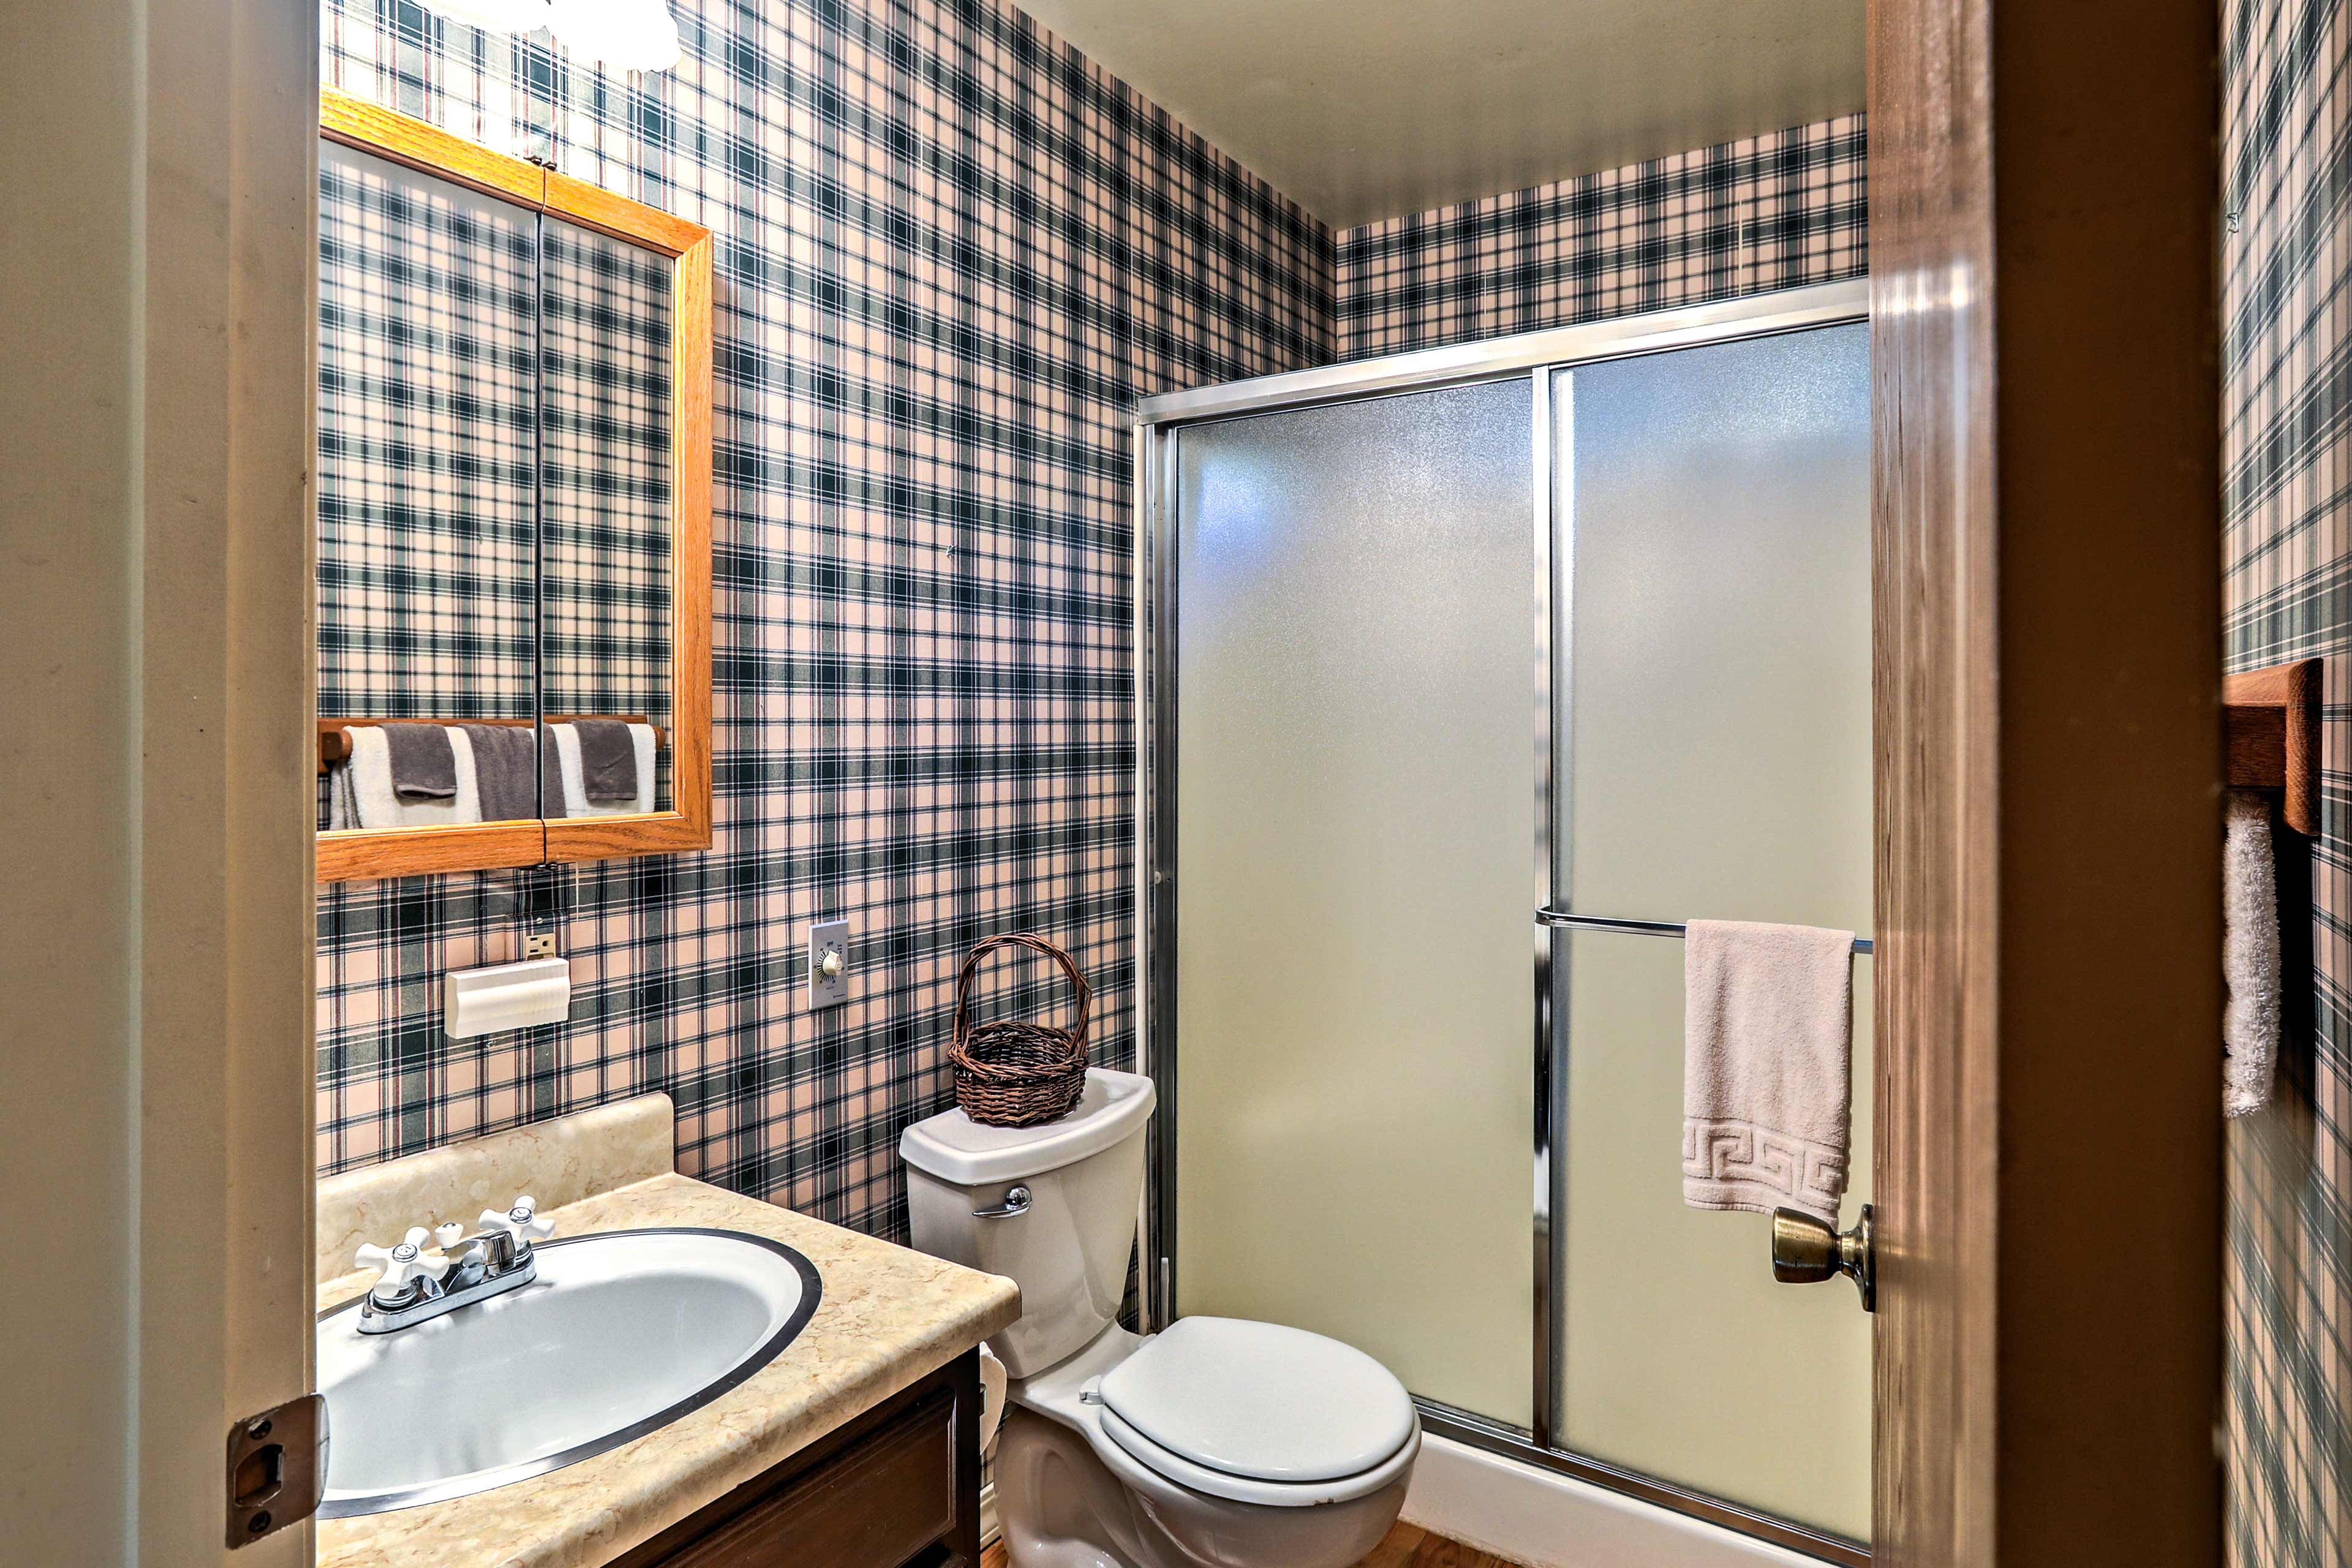 After a long day of Truckee adventures, freshen up in this full bathroom.